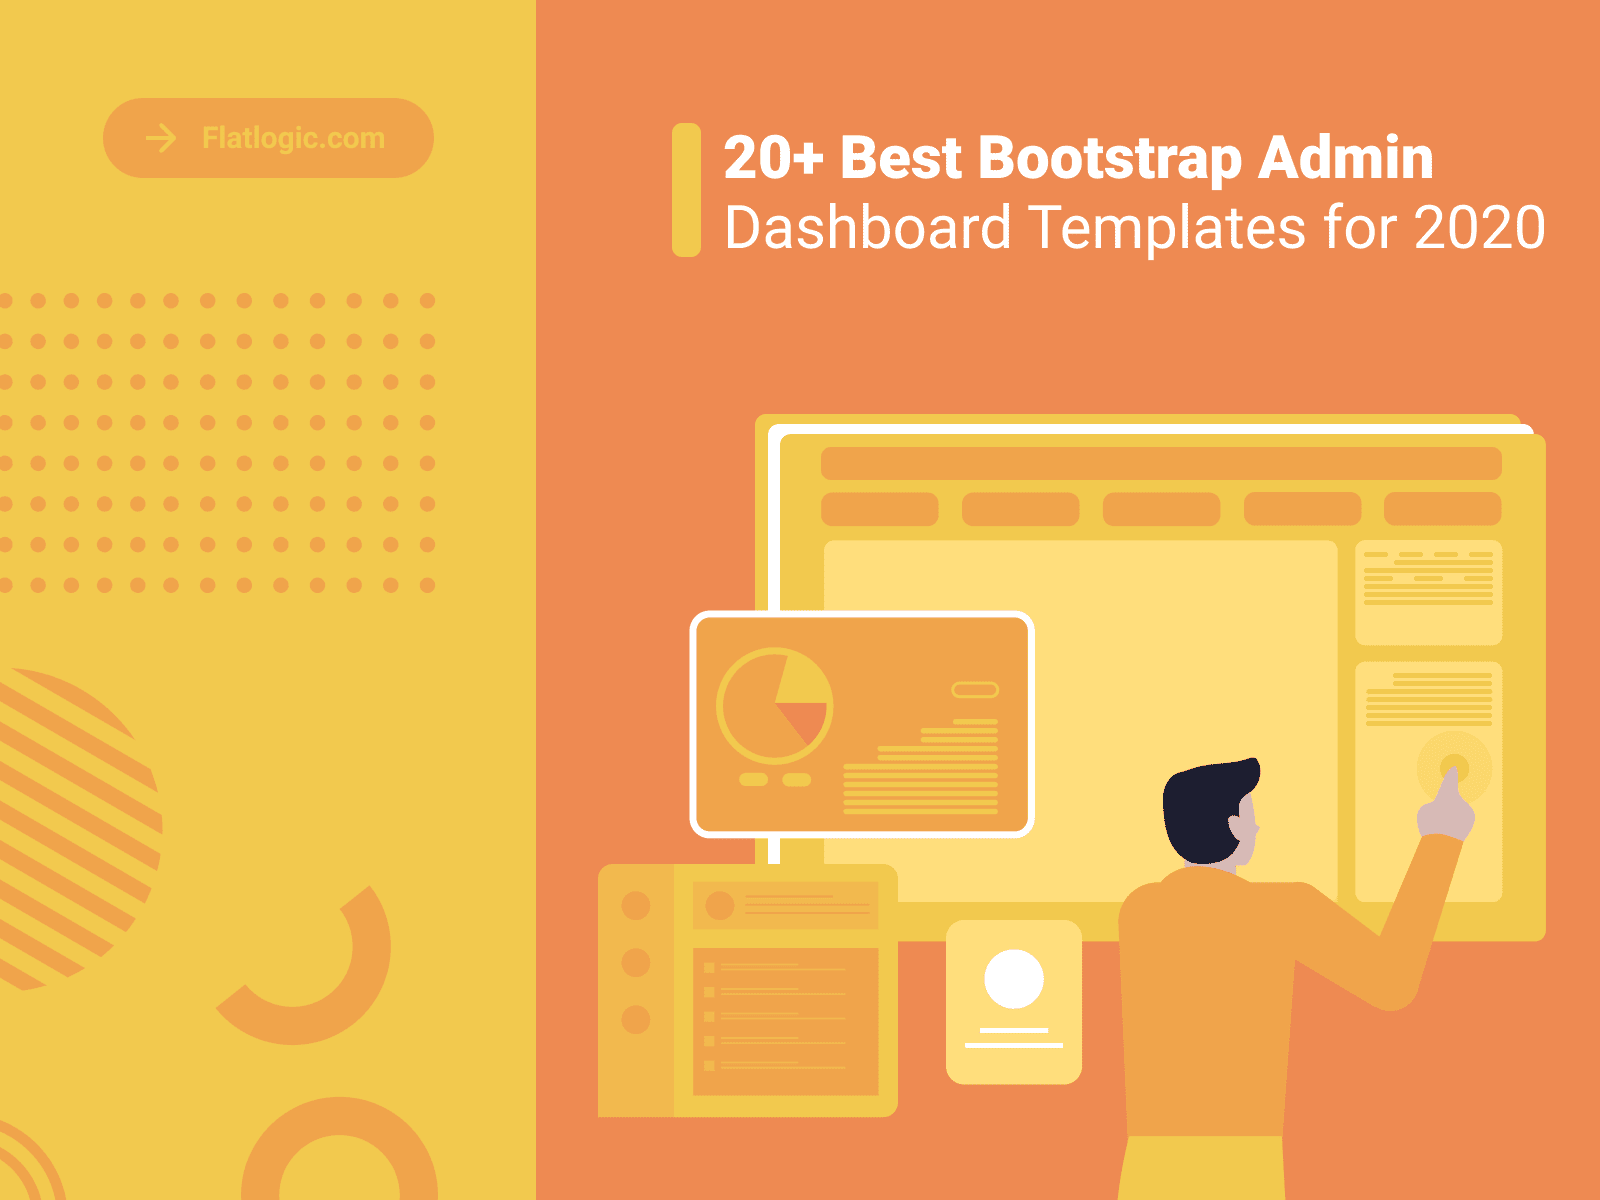 20+ Bootstrap Admin Dashboard Templates for 2020